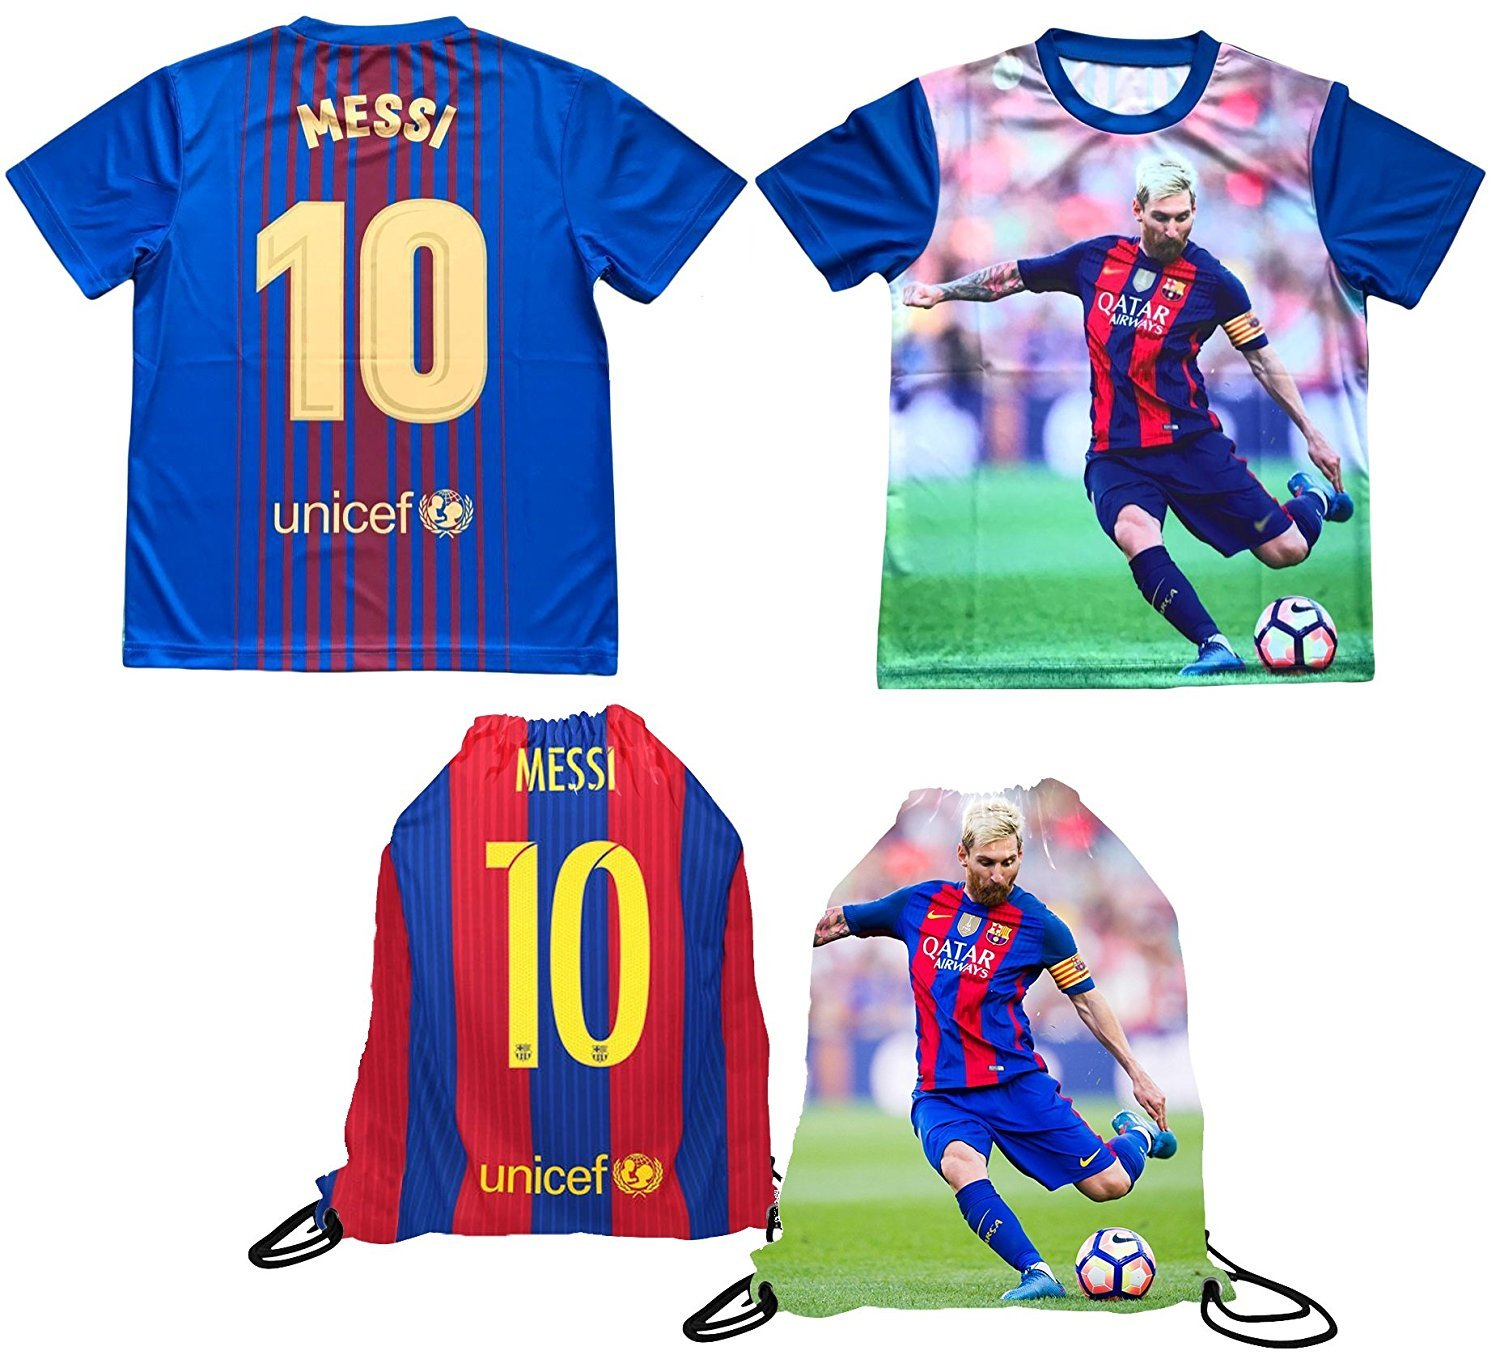 online store 5ecb5 80383 Details about Messi Jersey Style T-shirt Kids Lionel Messi Jersey Picture  T-shirt Gift Set...